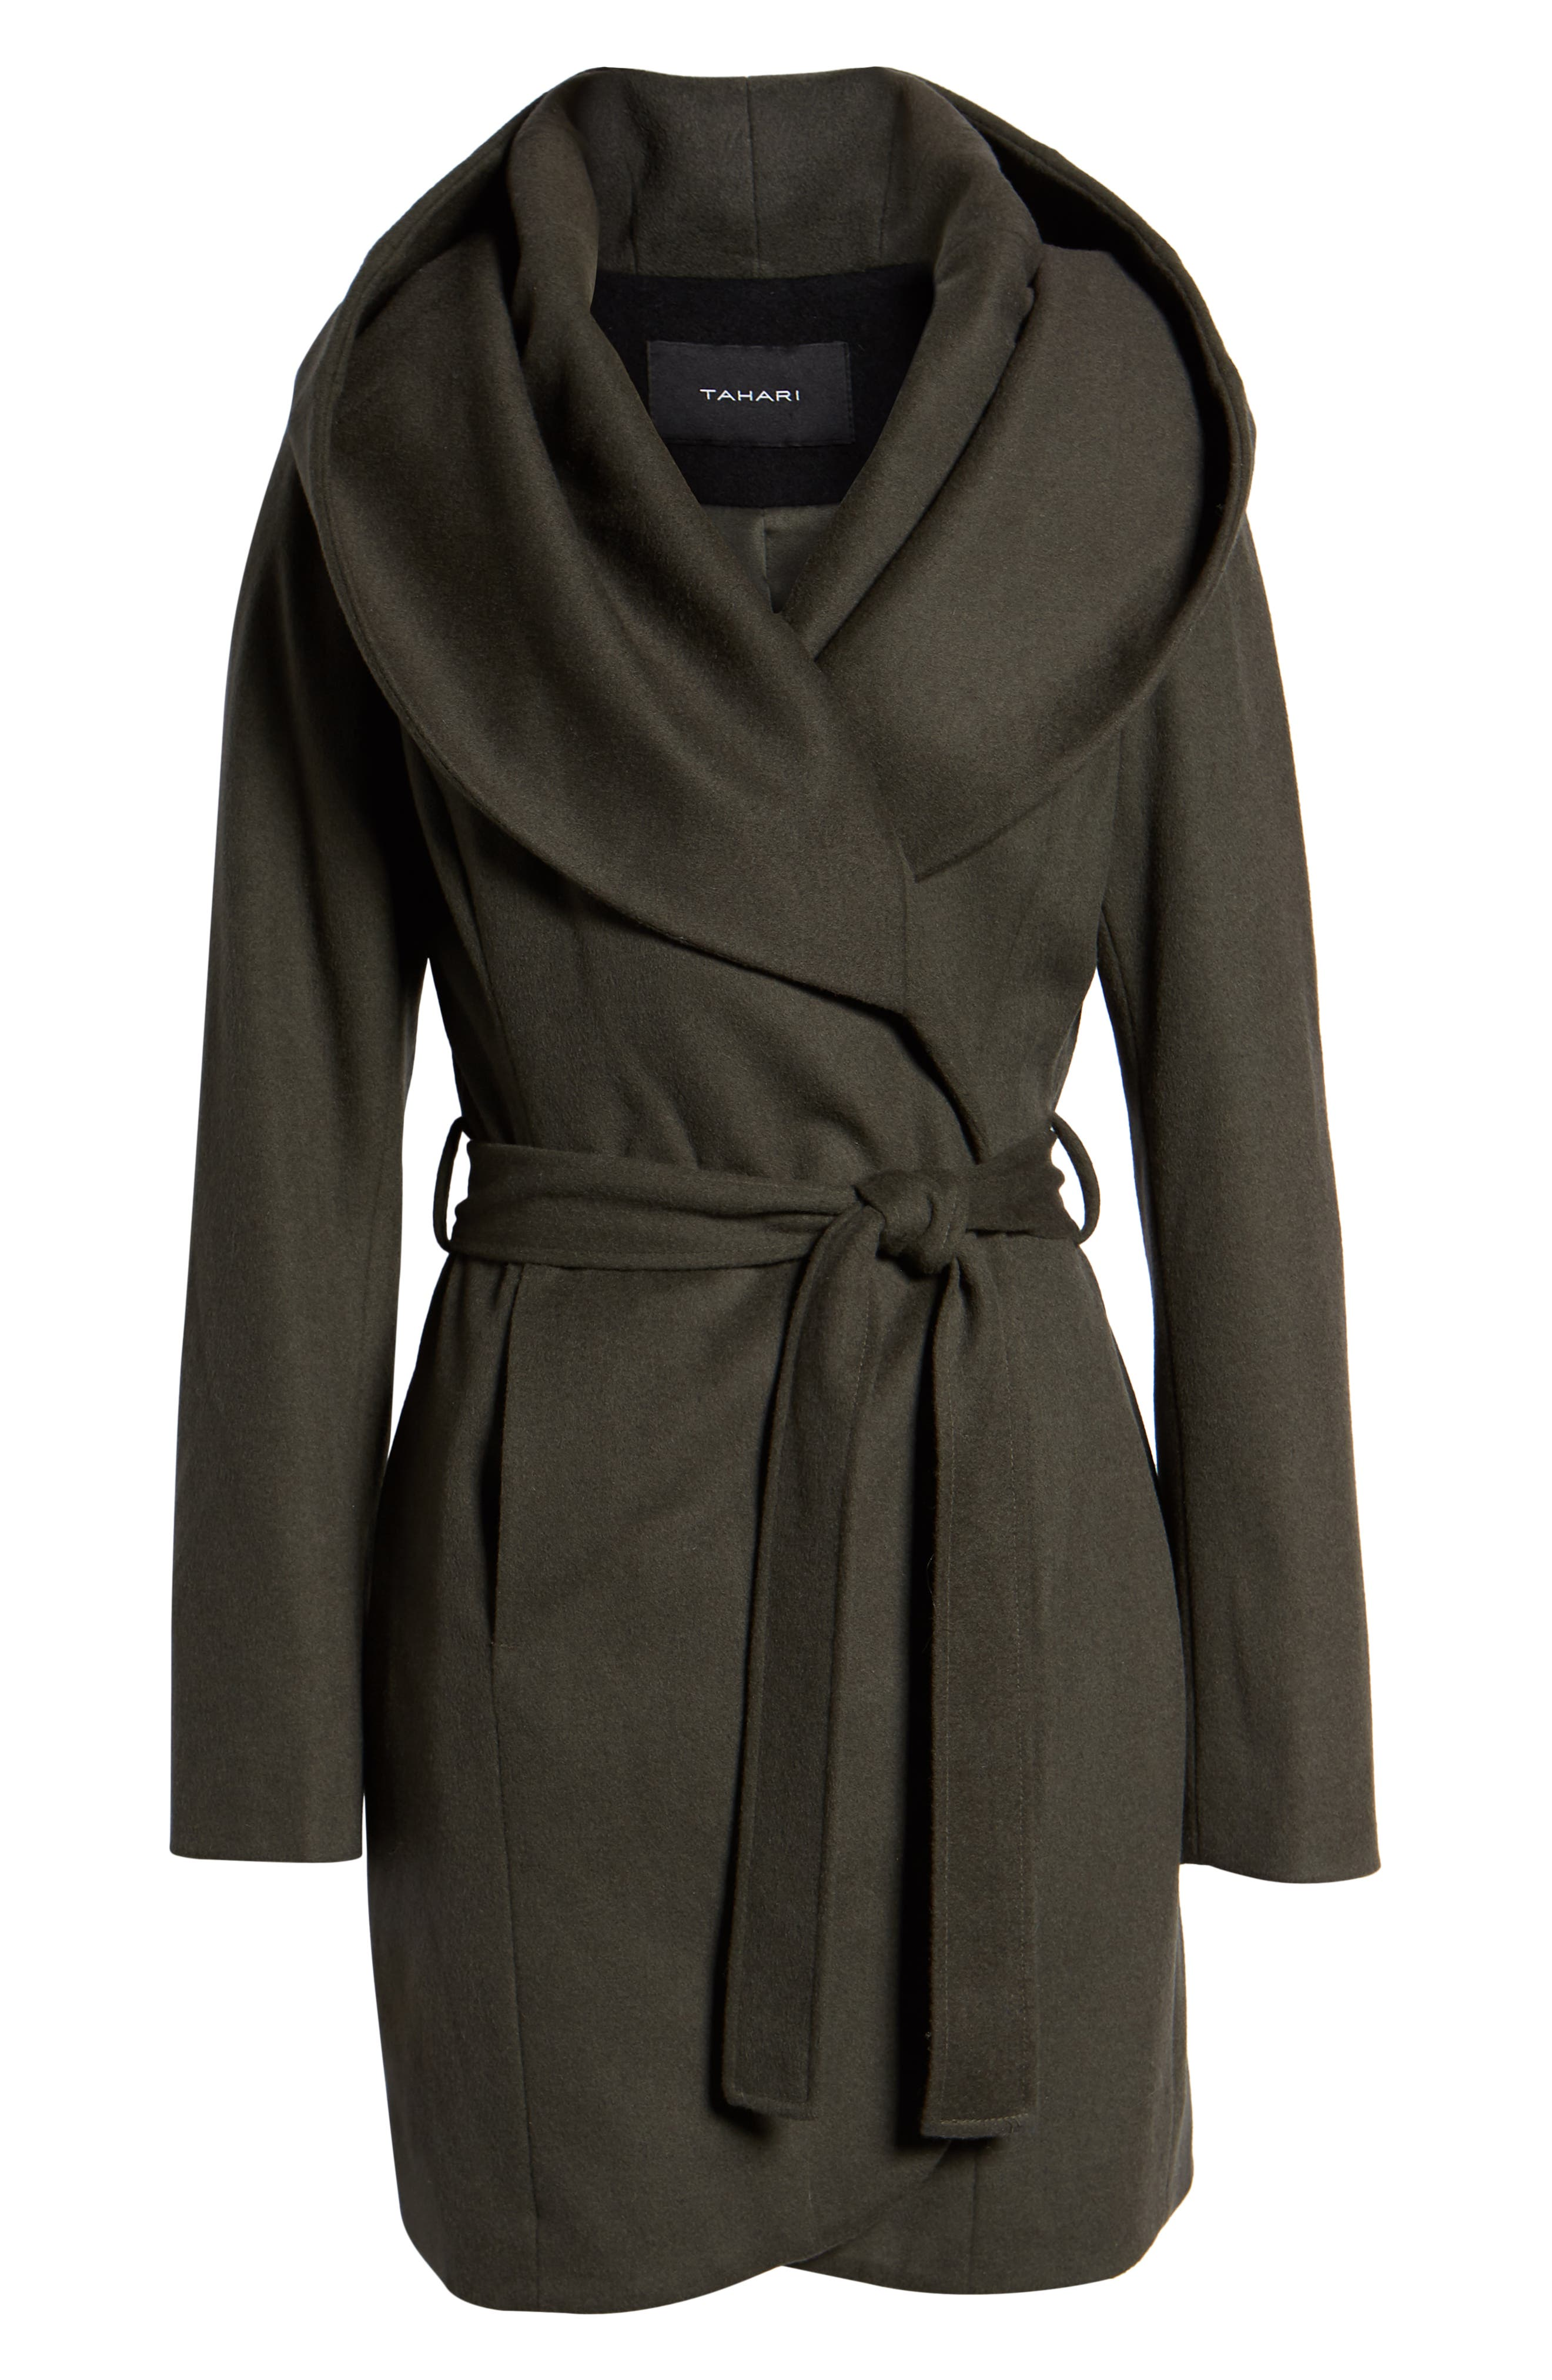 30 Formal Winter Coats That are Worth theInvestment picture